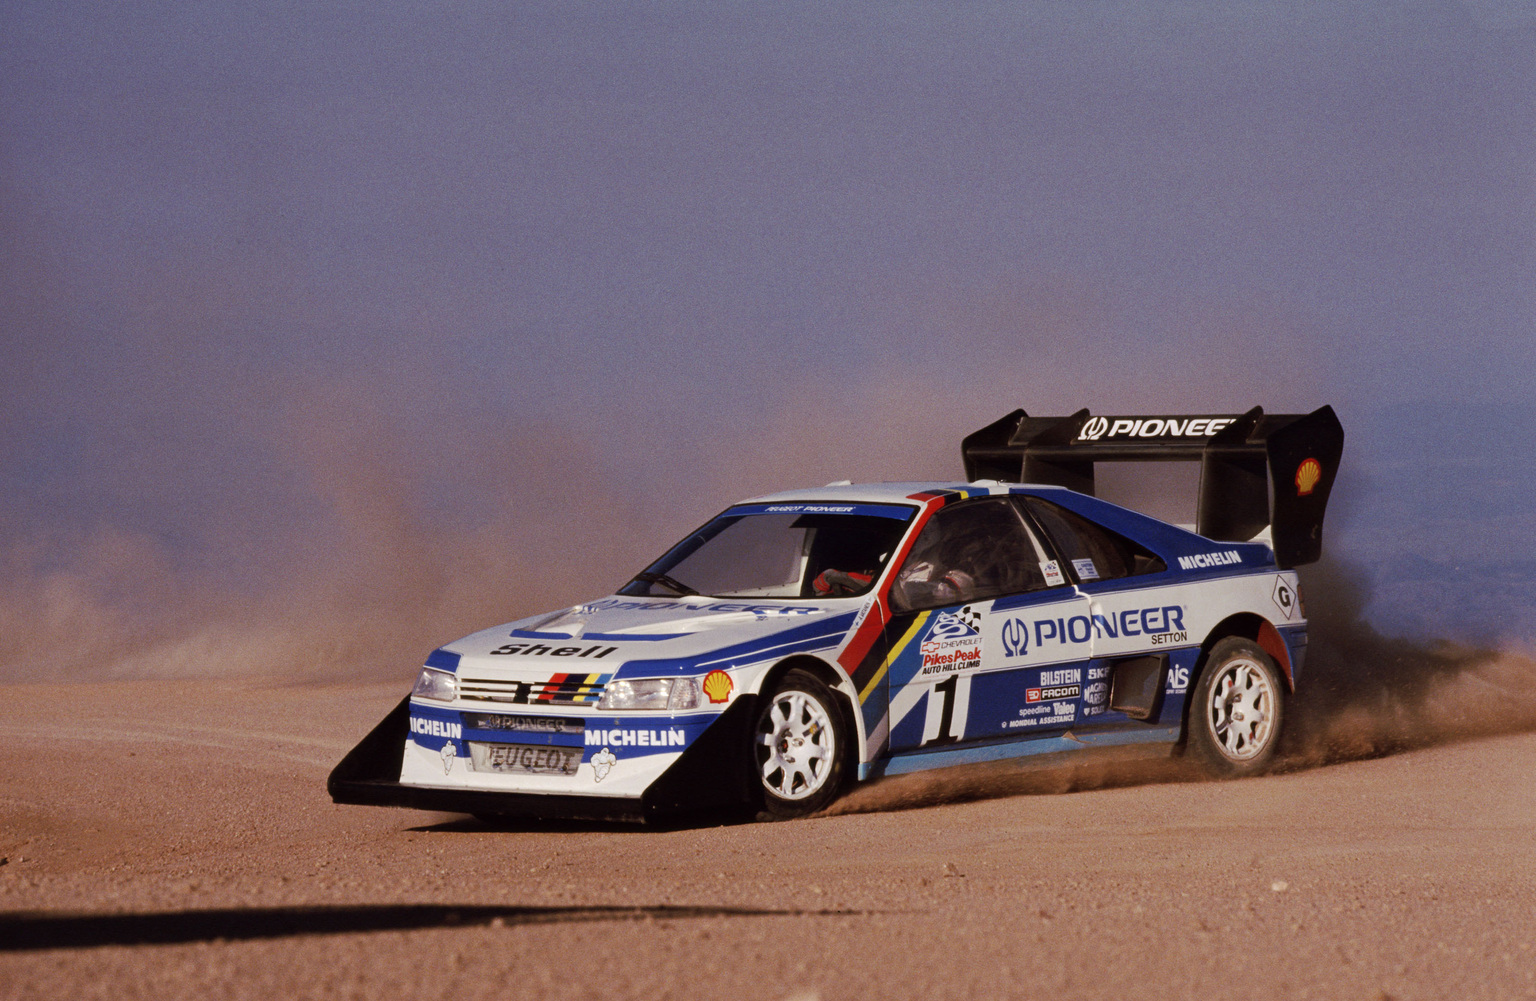 1988 peugeot 405 t16 gr pikes peak peugeot. Black Bedroom Furniture Sets. Home Design Ideas